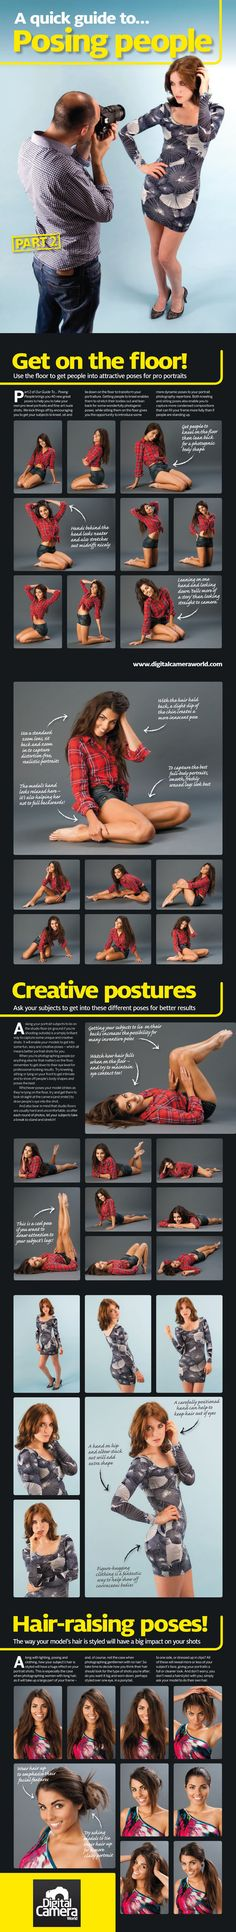 Portrait Photography Poses